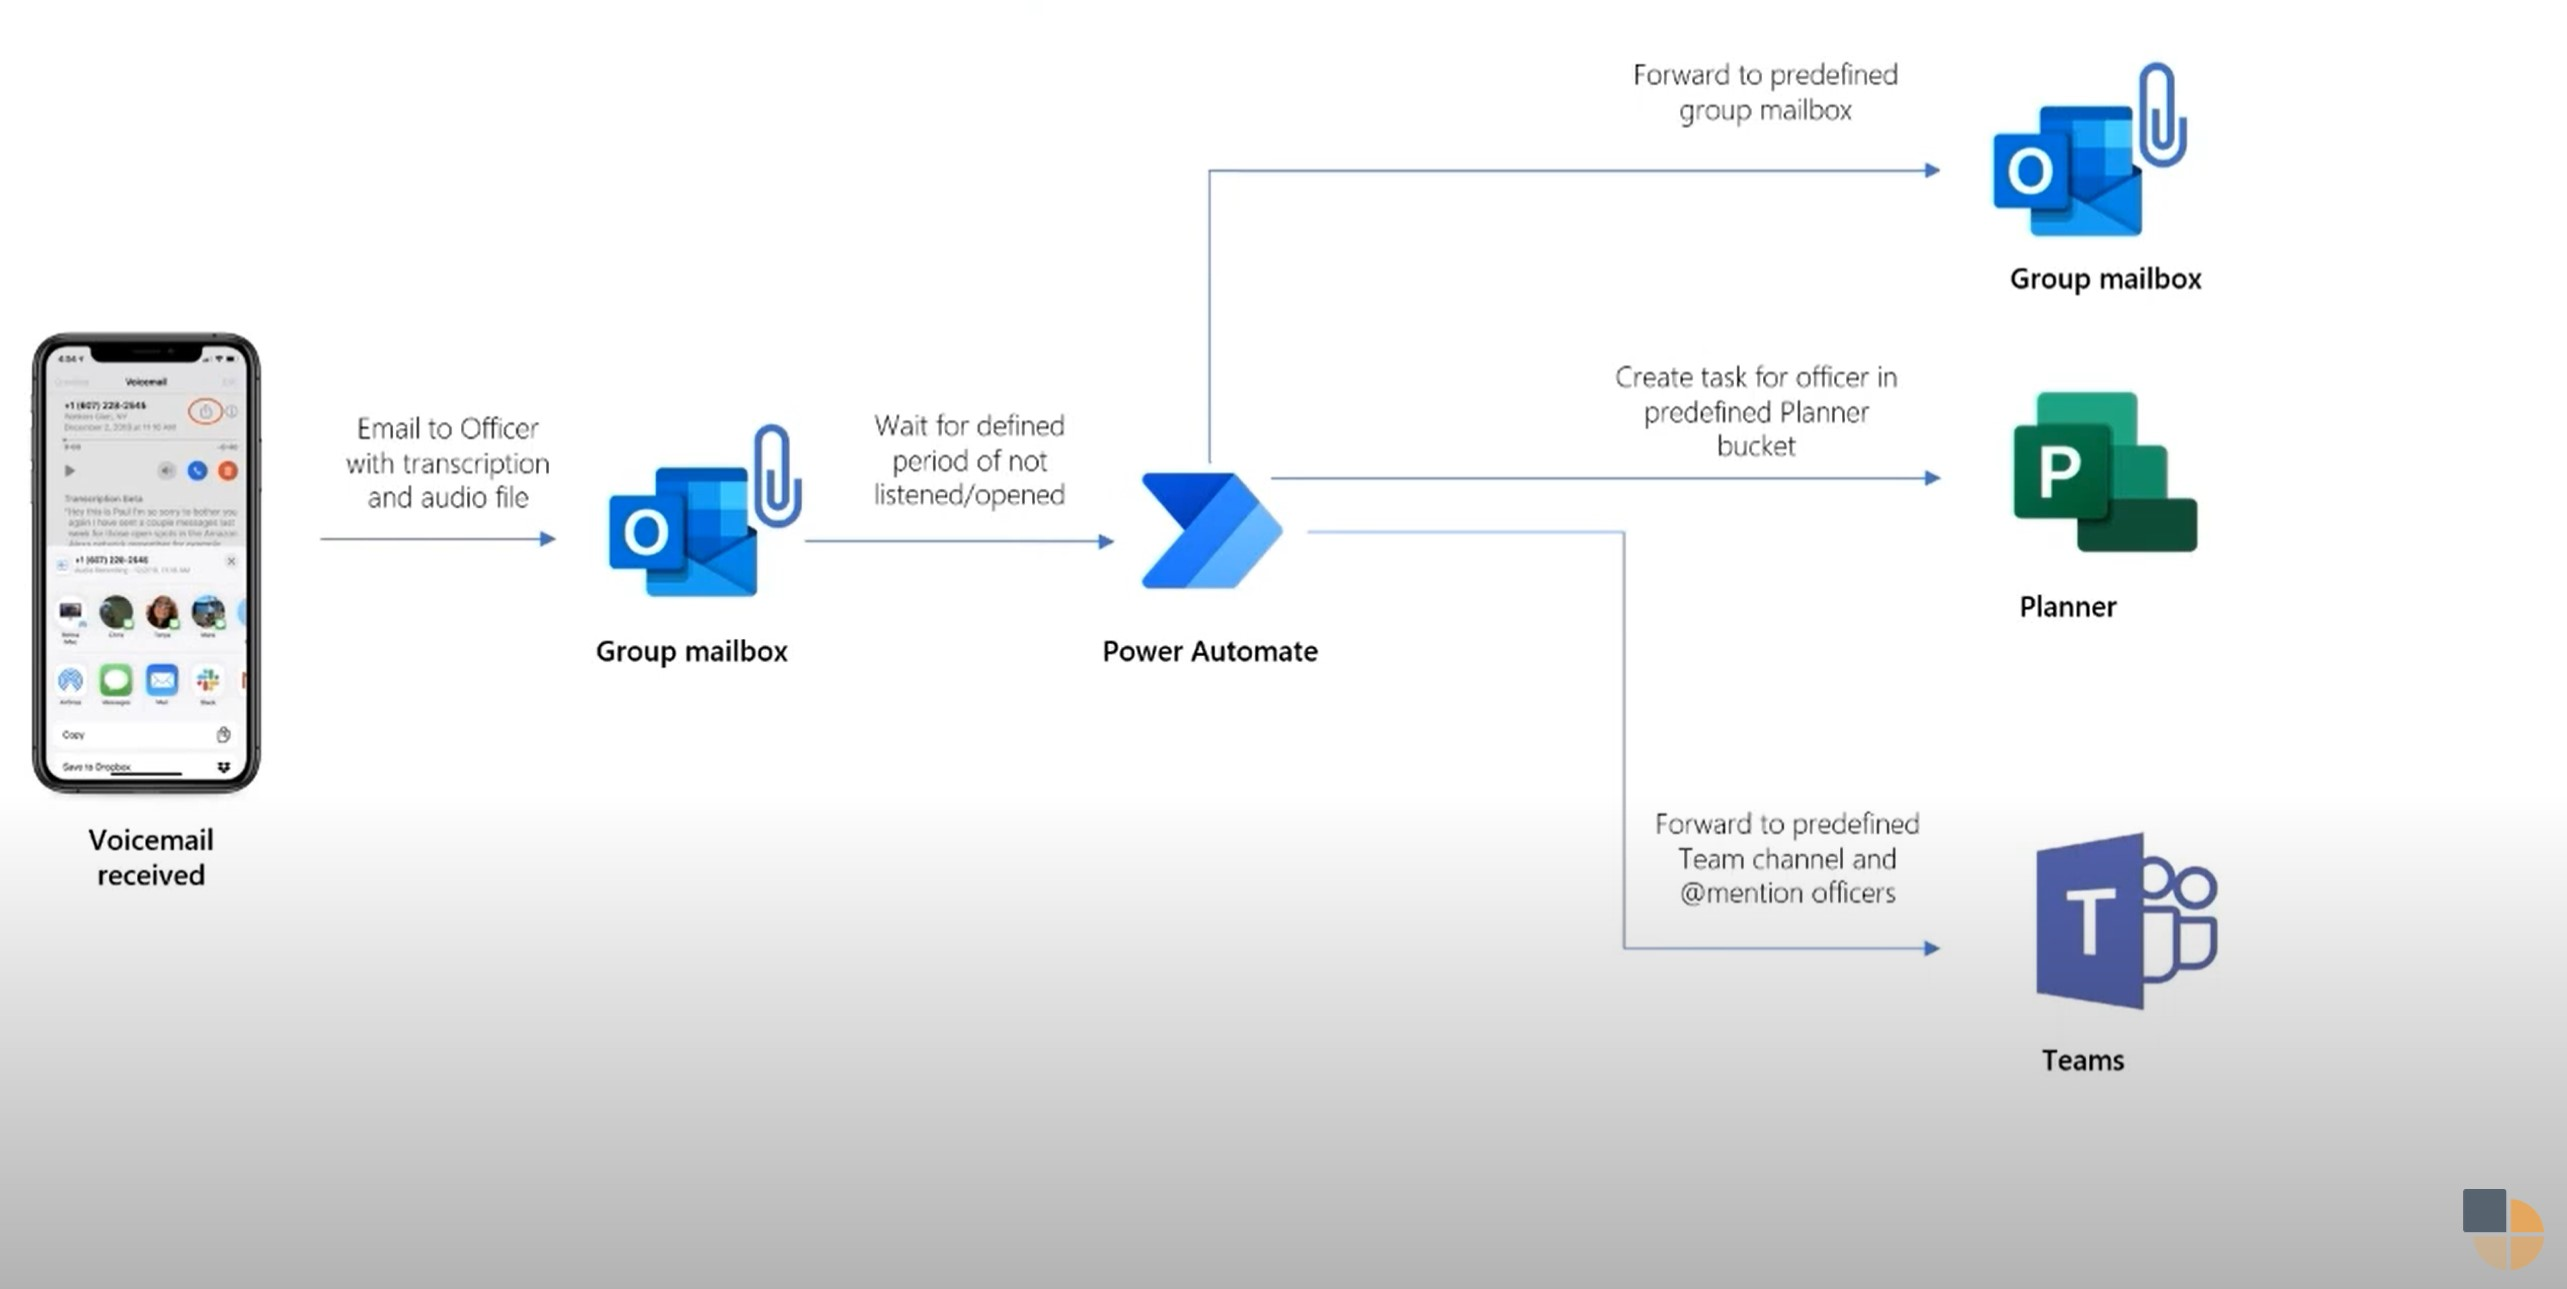 An example workflow on PowerAutomate